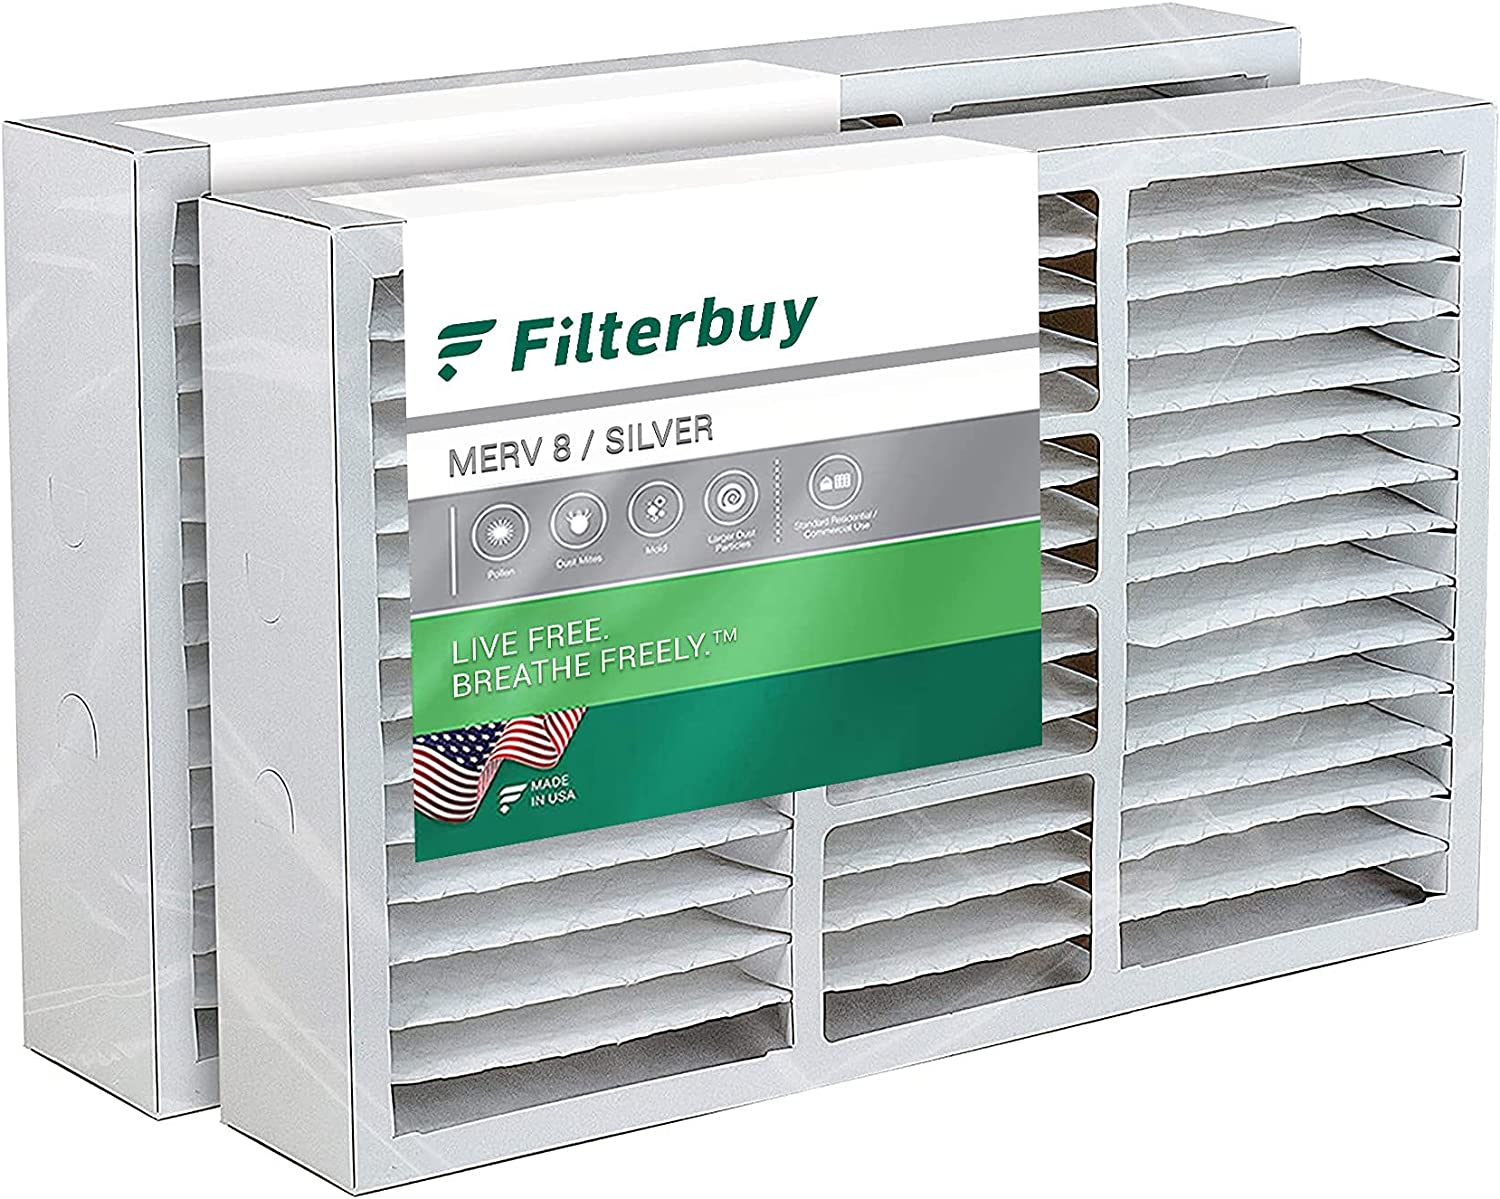 FilterBuy 19x20x4 19x20x5 Air Filter Pleated New color Replaceme 8 MERV Long Beach Mall